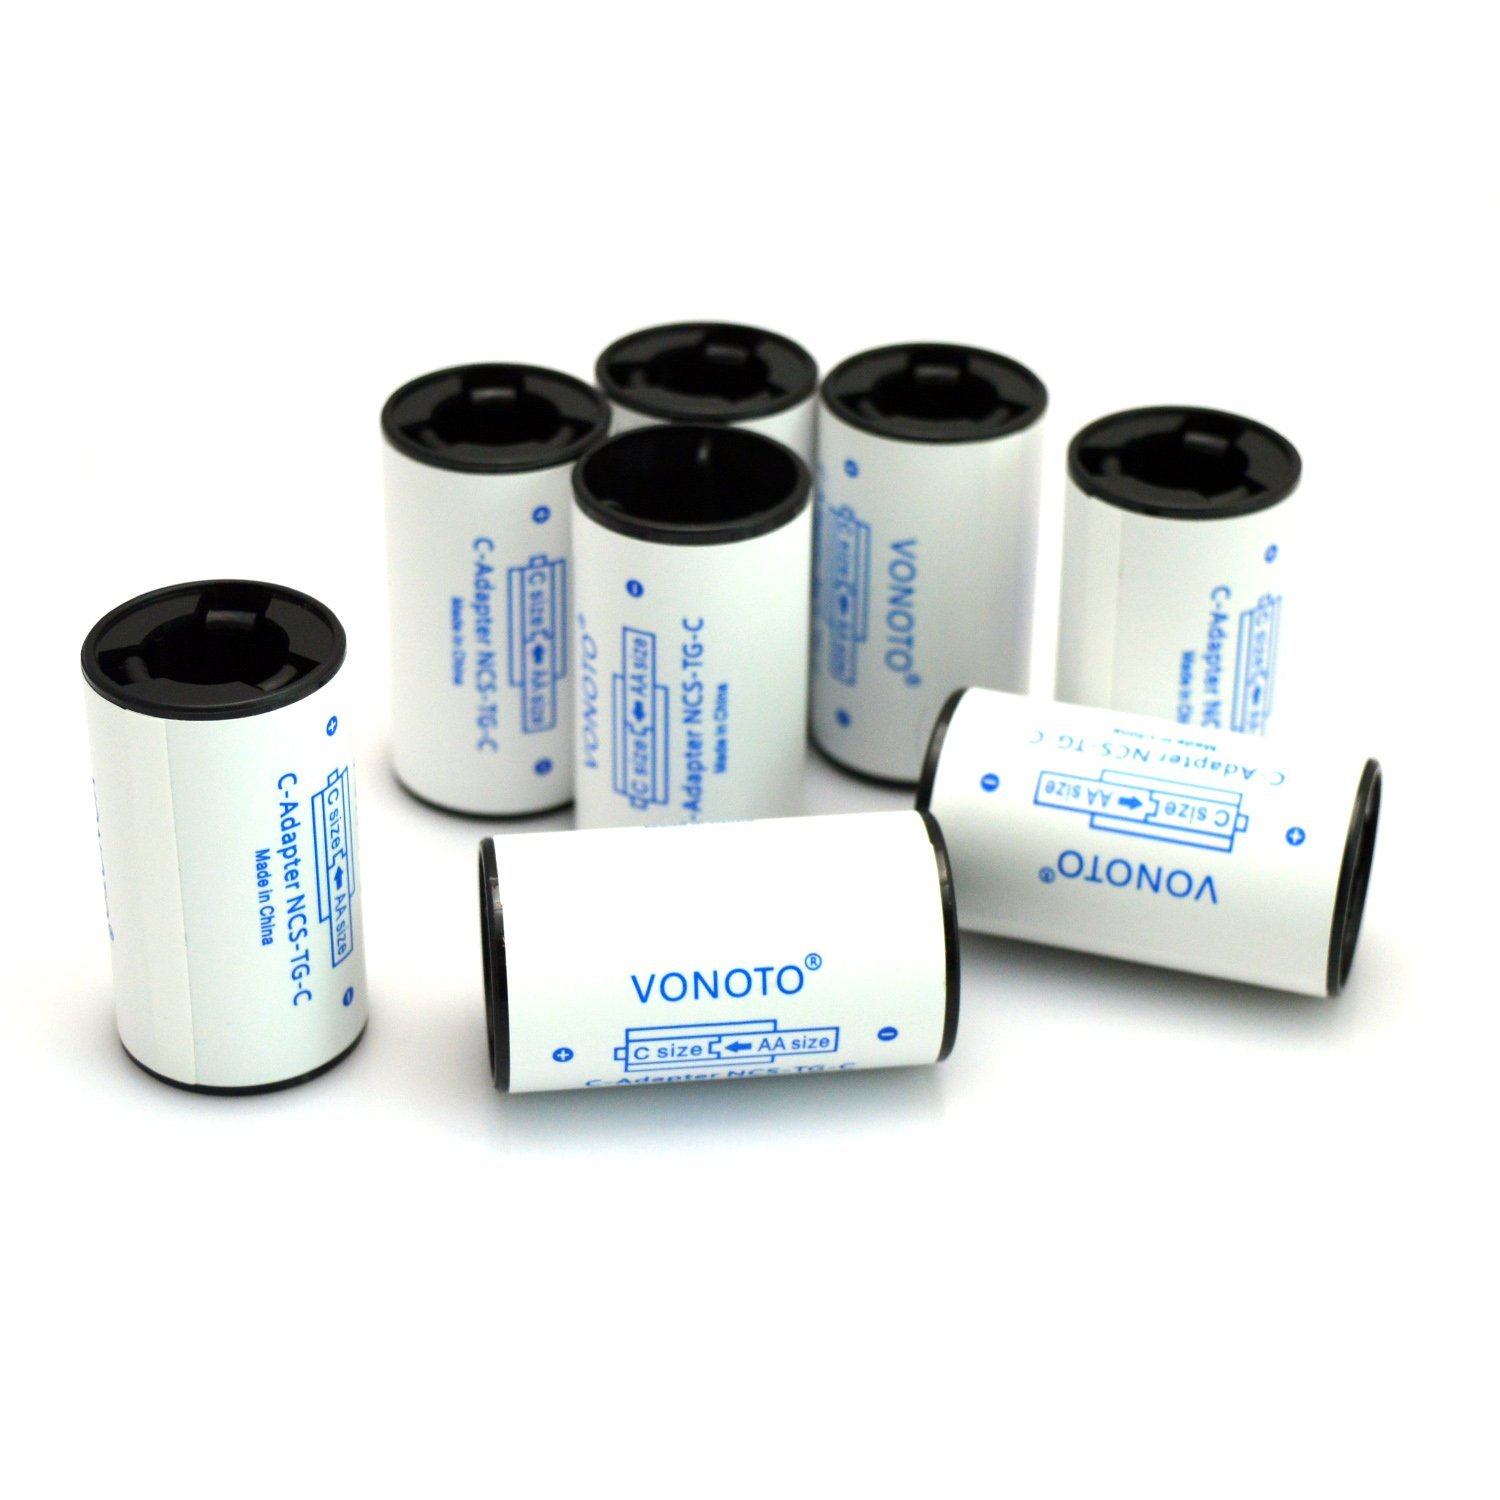 VONOTO 8pcs AA to C Size adapter Rechargeable Battery Adapter Spacers Case (8pcs AA to C)